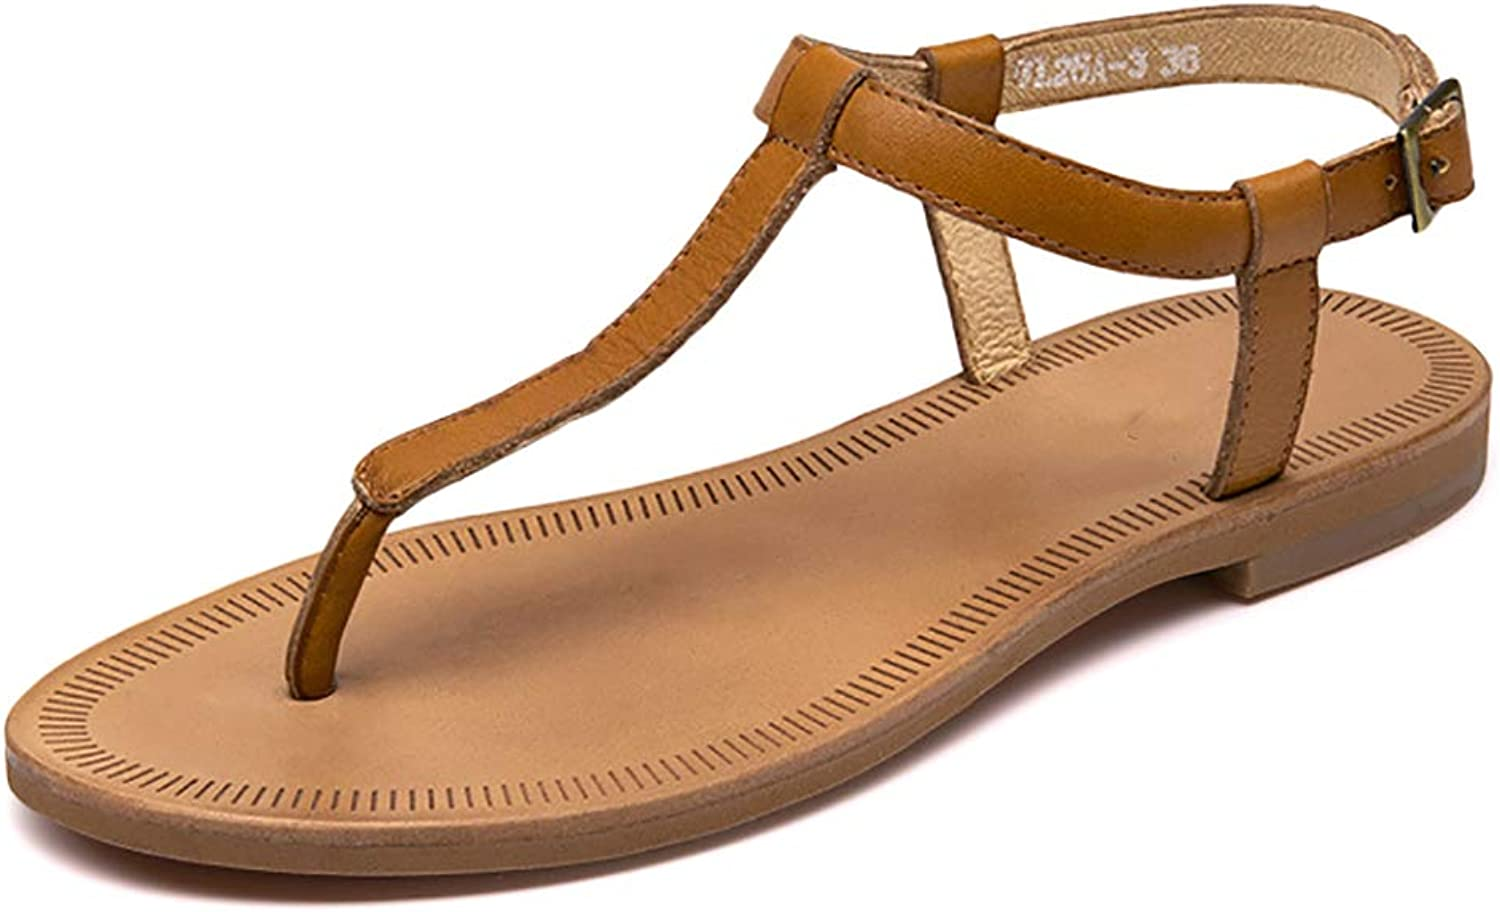 Odema Women's Cowhide Leather Sandals T-Strap Ankle Strap Flat Sandals